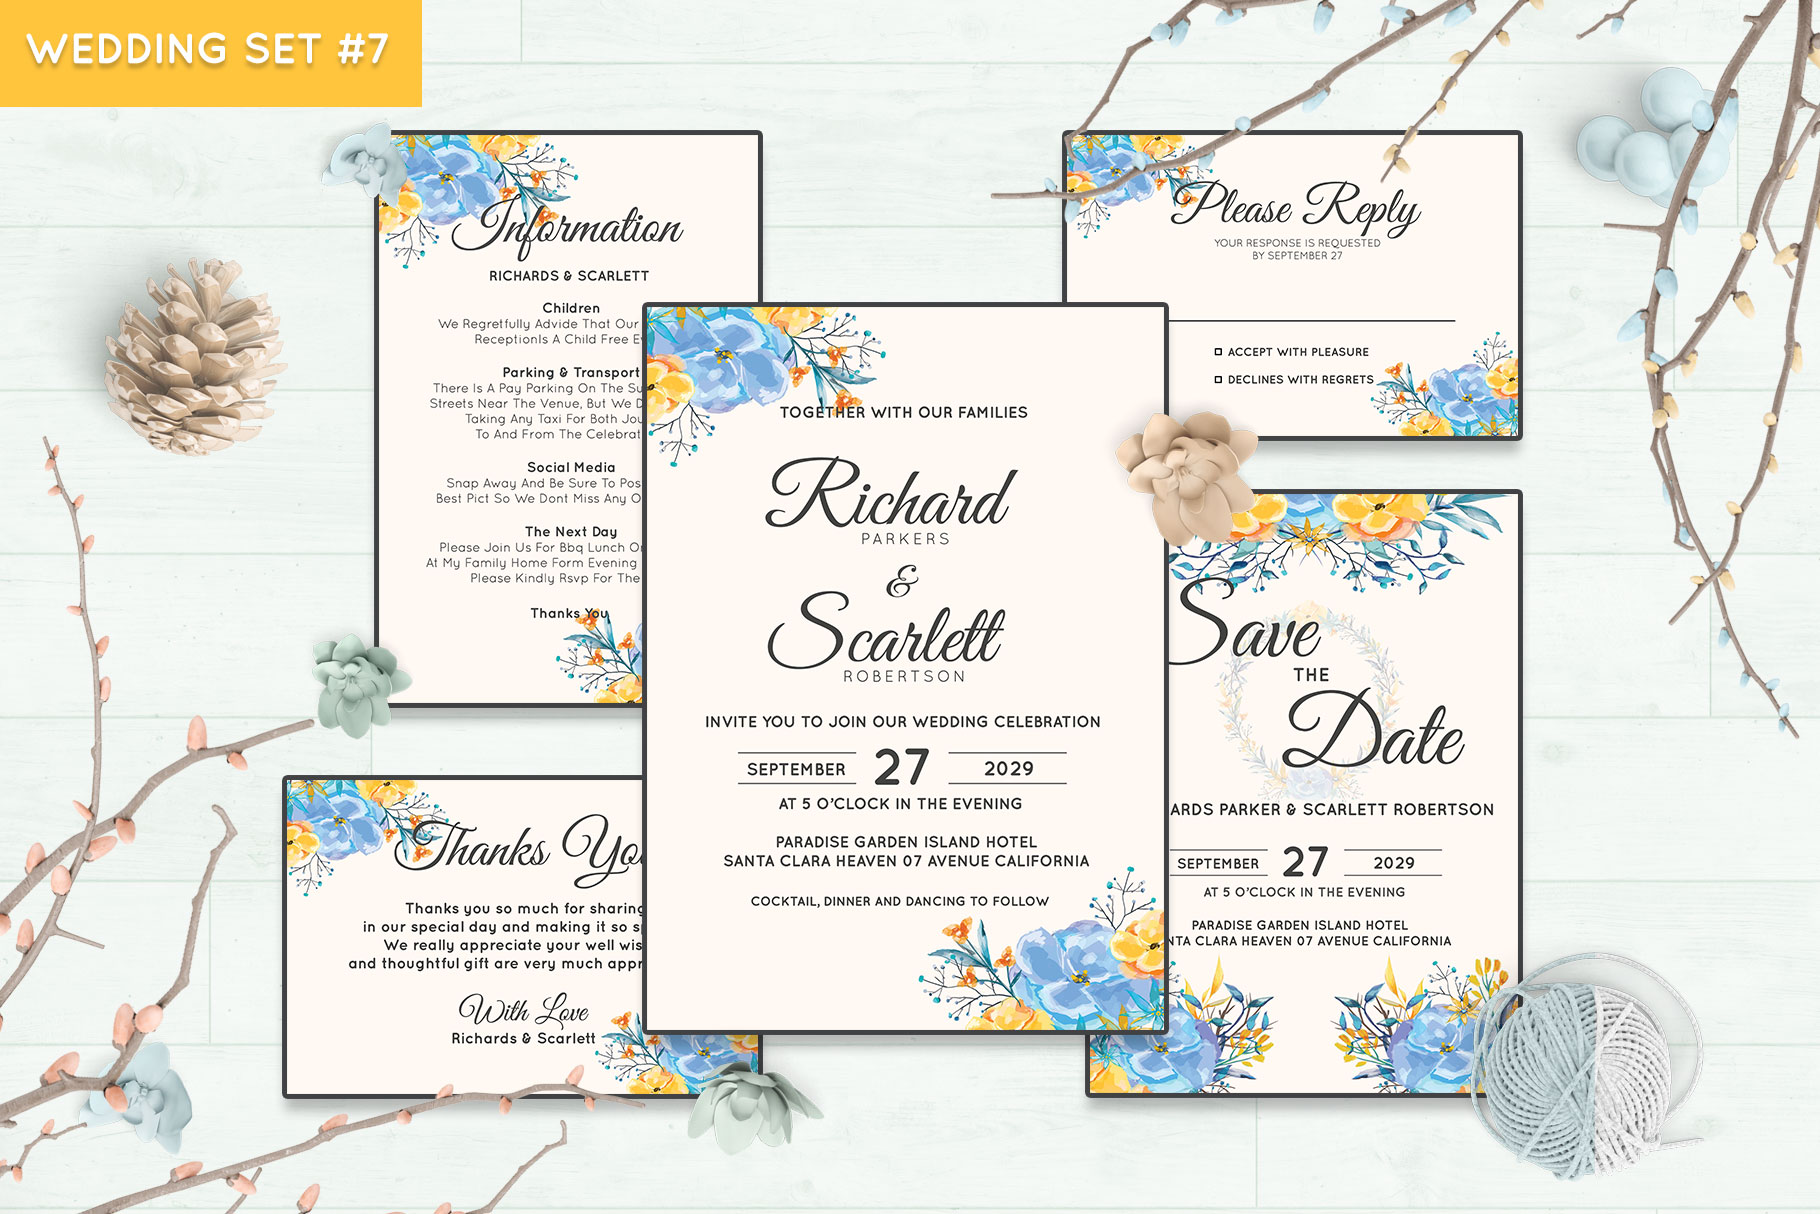 Wedding Invitation Set #7 Watercolor Floral Flower Style example image 1